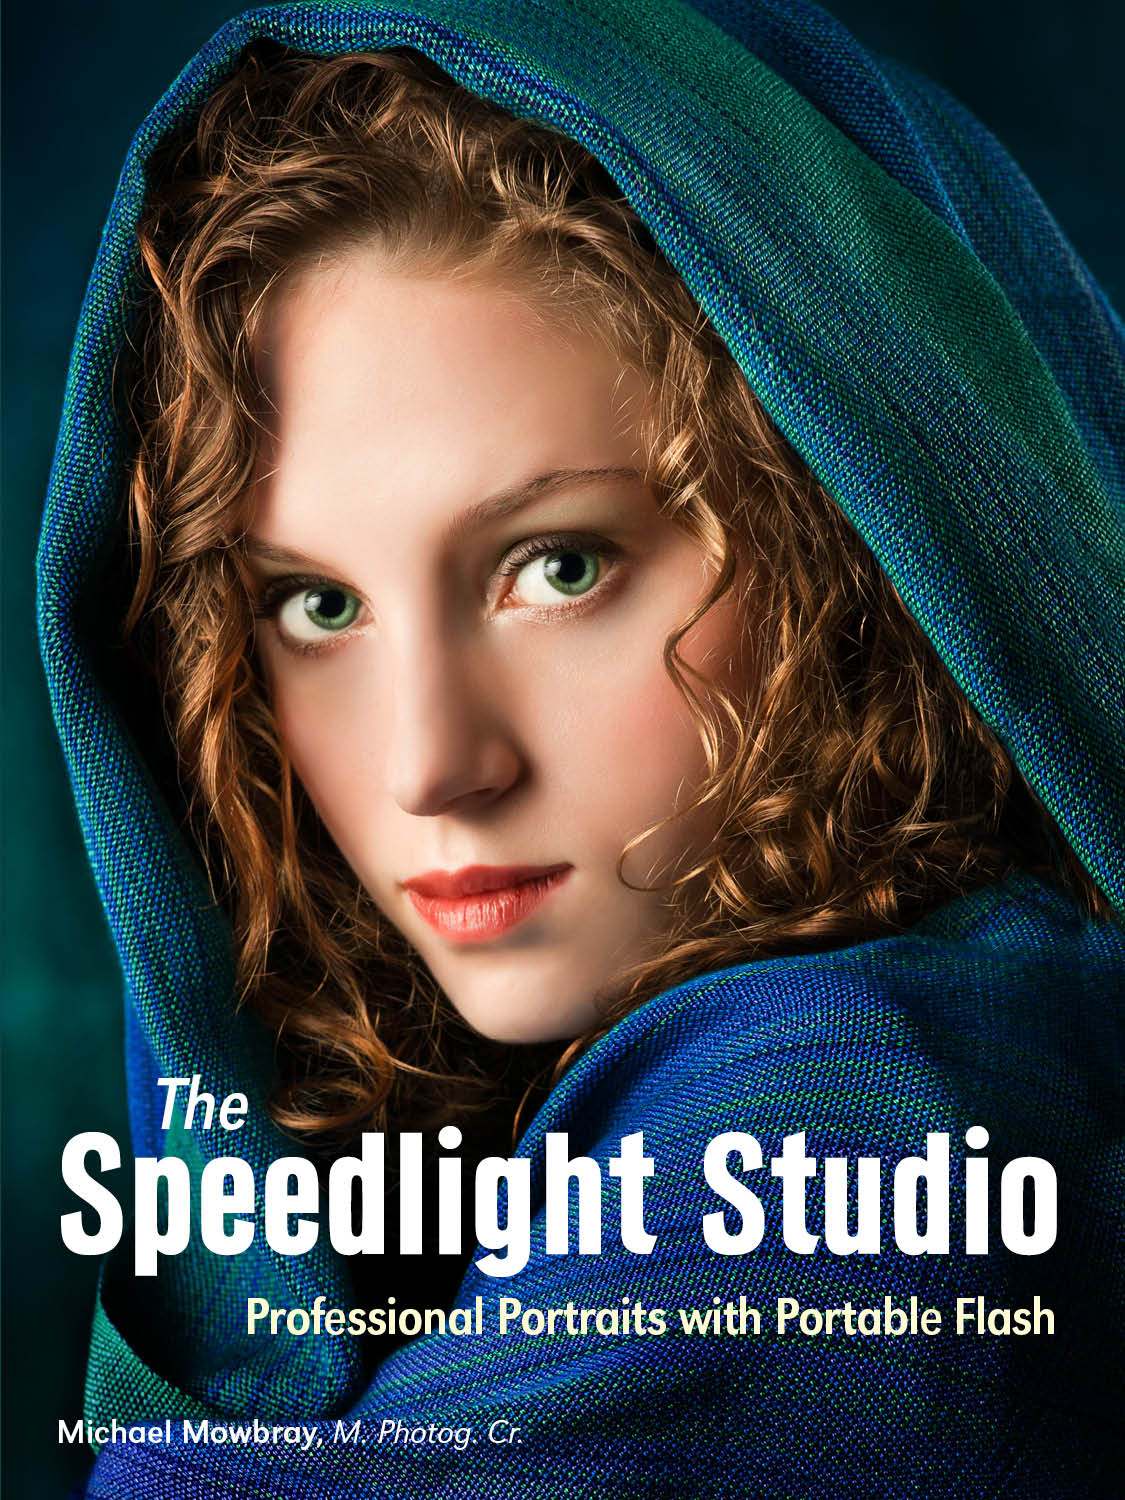 The Speedlight Studio - by Michael Mowbray